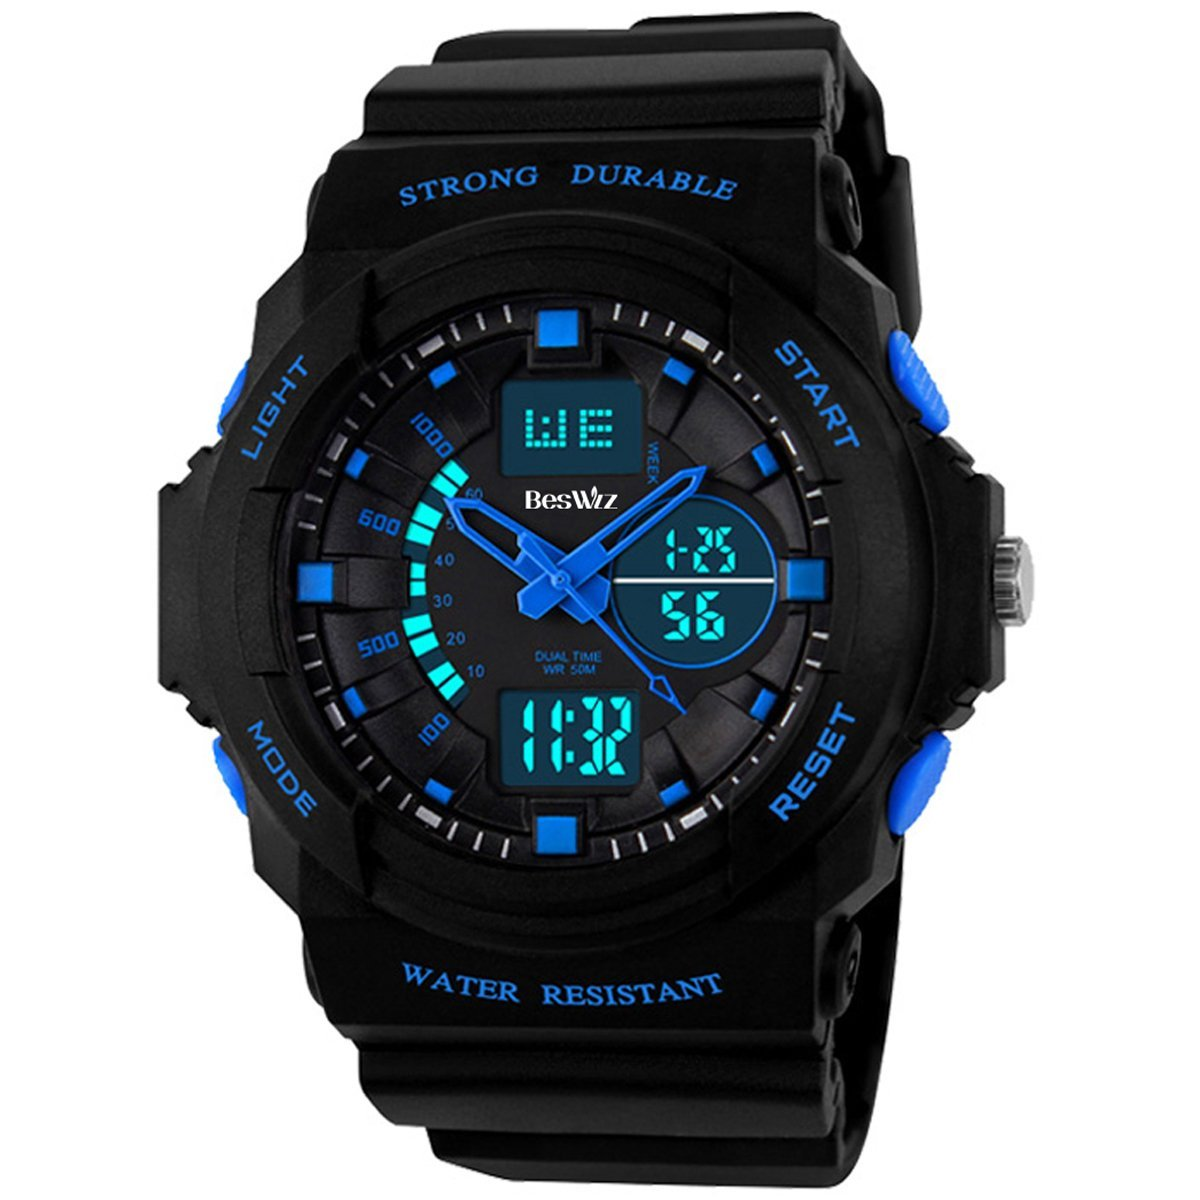 BesWLZ Kids Sports Watches Multi Function Waterproof Quartz Watch Wrist Dress Watch with LED Digital Alarm Stopwatch for Boy - Blue by BesWlz